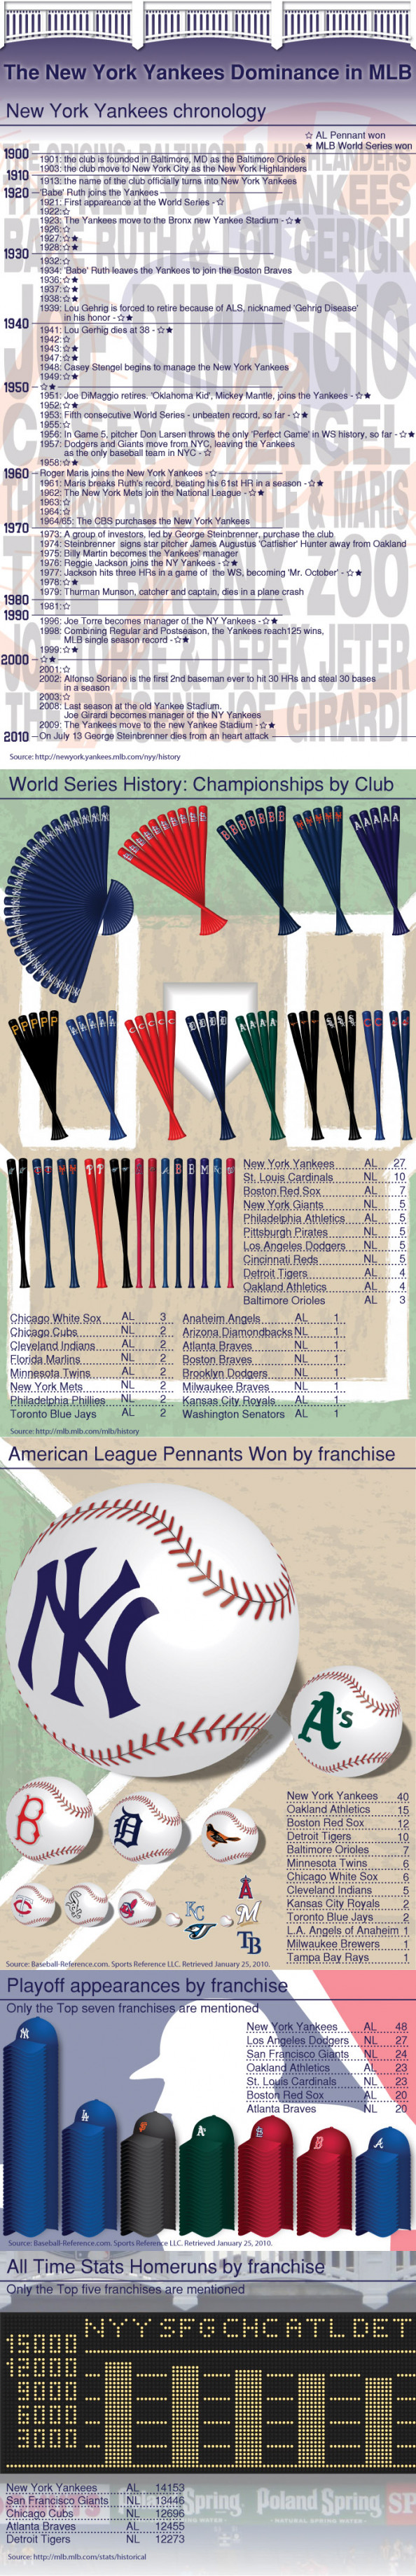 New York Yankees Dominance in Baseball Infographic